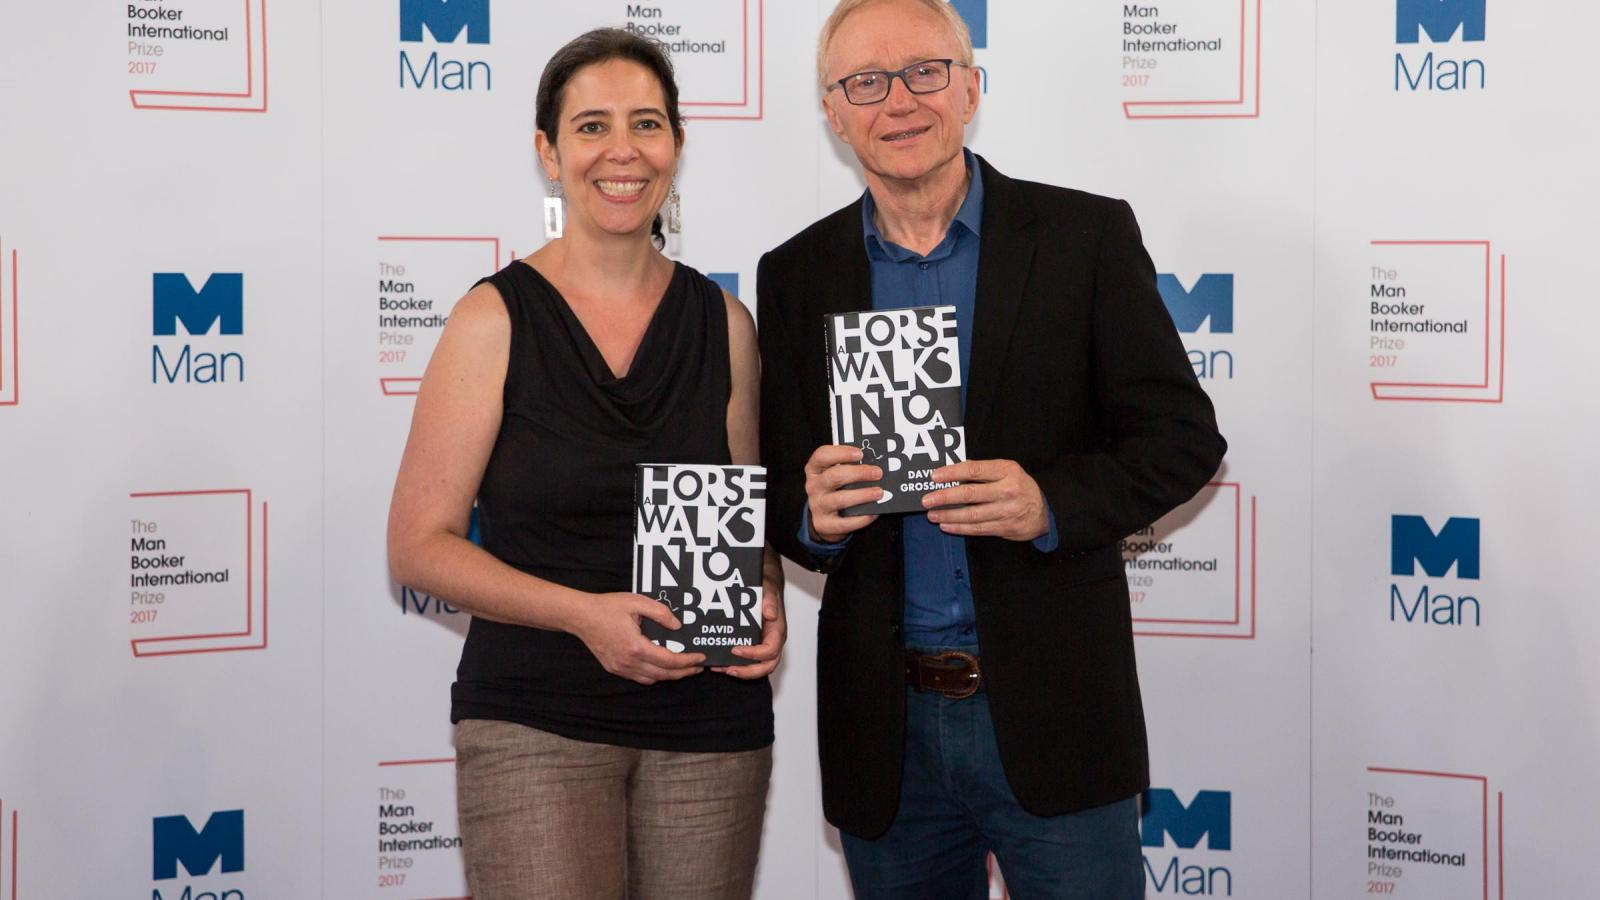 David Grossman wins Man Booker International Prize 2017